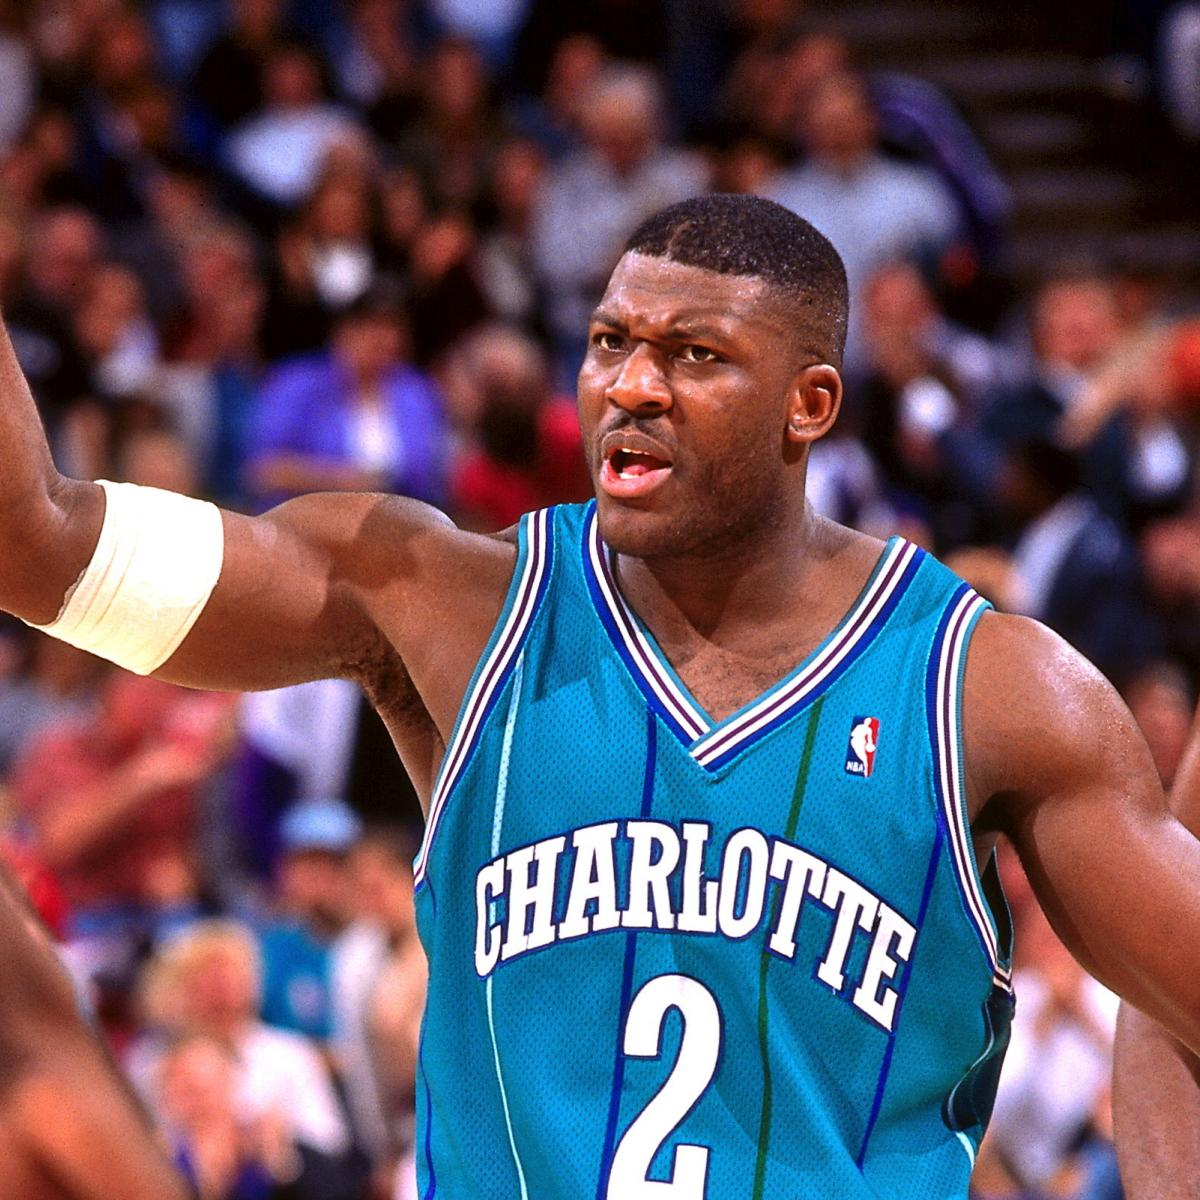 c8065f1e80a Charlotte Bobcats Reportedly Will Change Nickname Back to Hornets ...